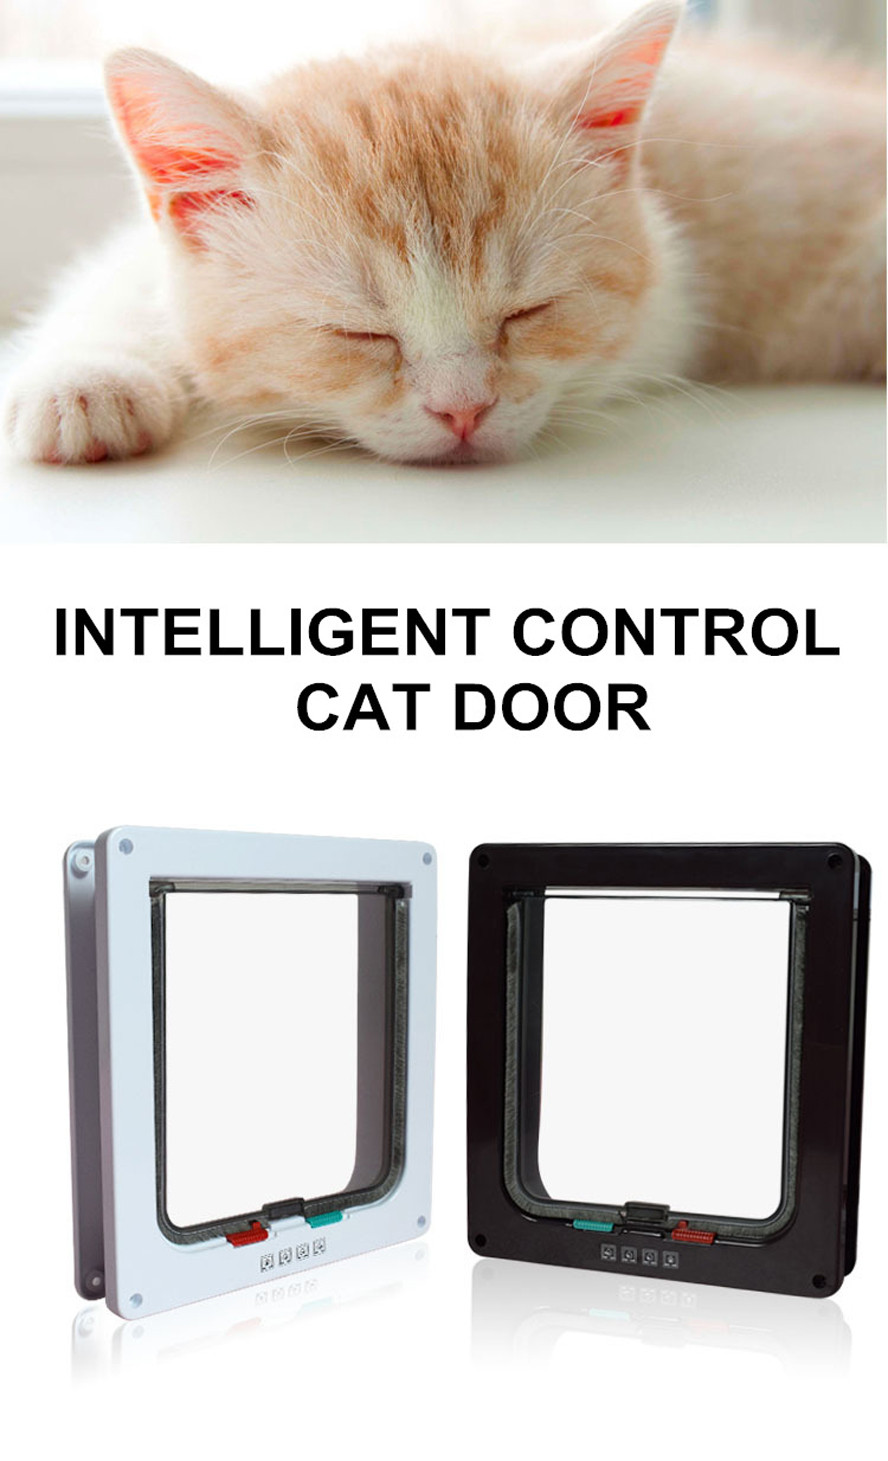 Cat Gates Door cat gates door 3 Size 4 Way Cat Gates Door Lockable Safe Flap Door HTB1bipNOVXXXXXgXVXXq6xXFXXXD